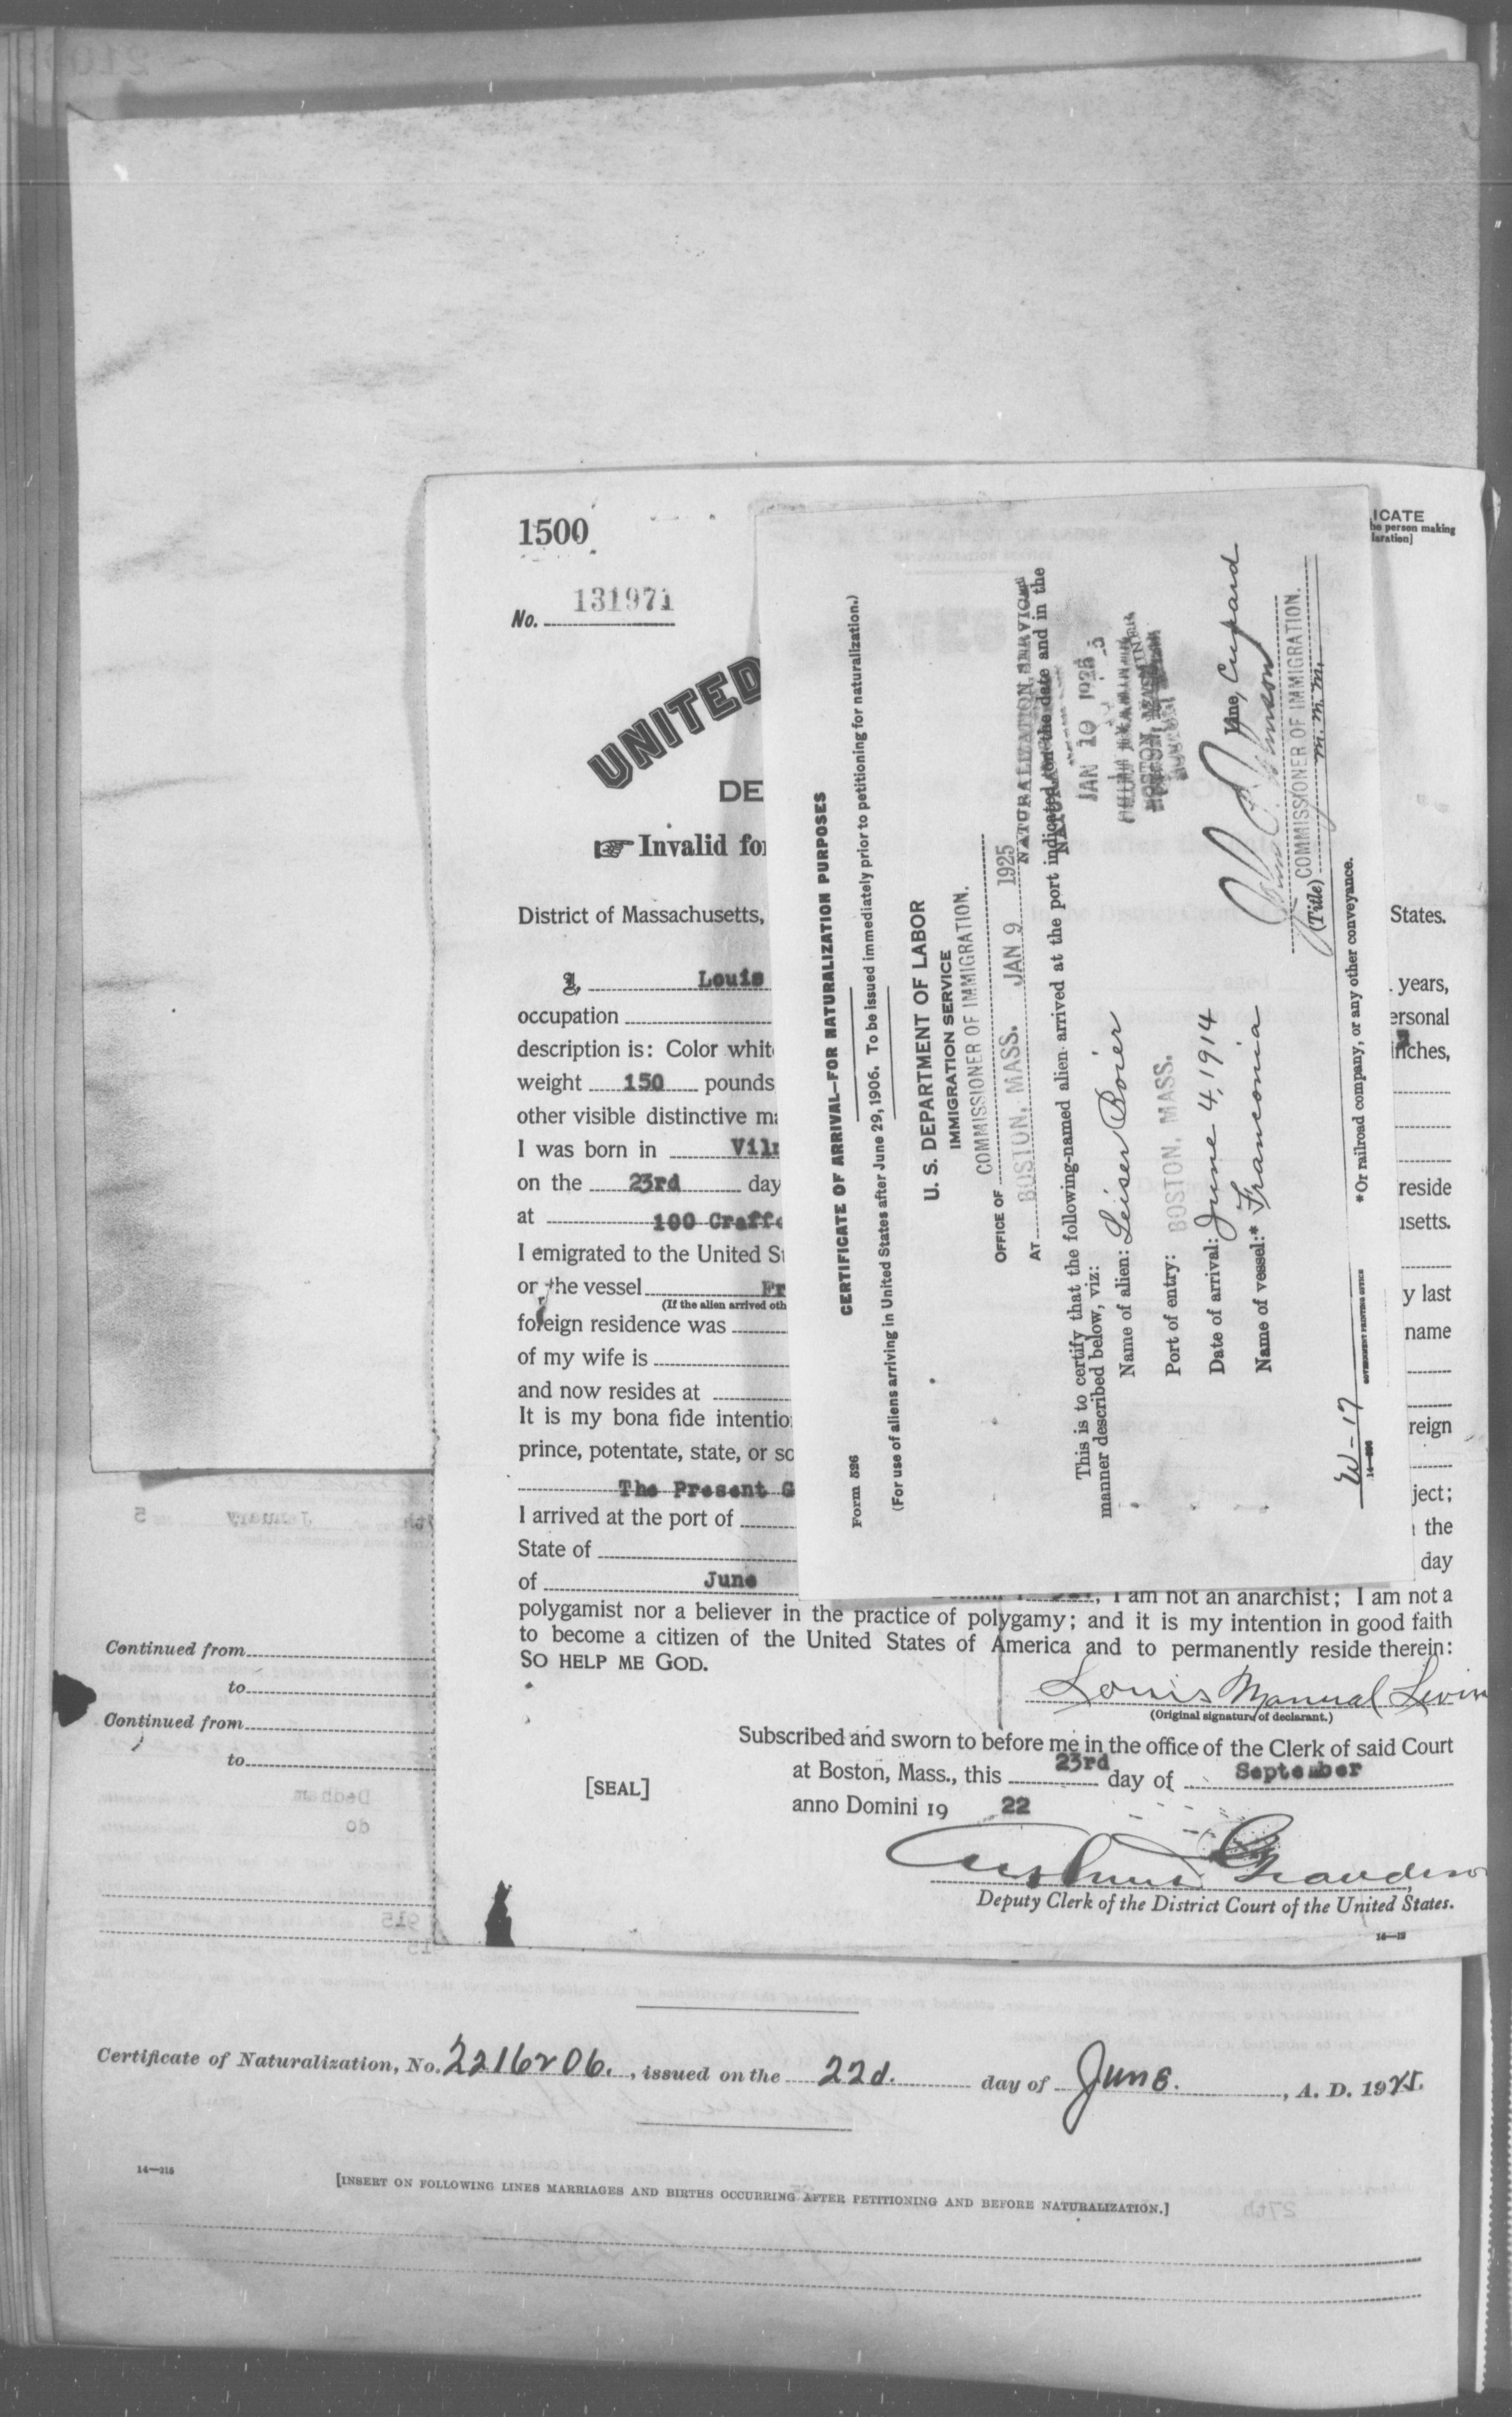 Petition for Naturalization of Leiser Boier